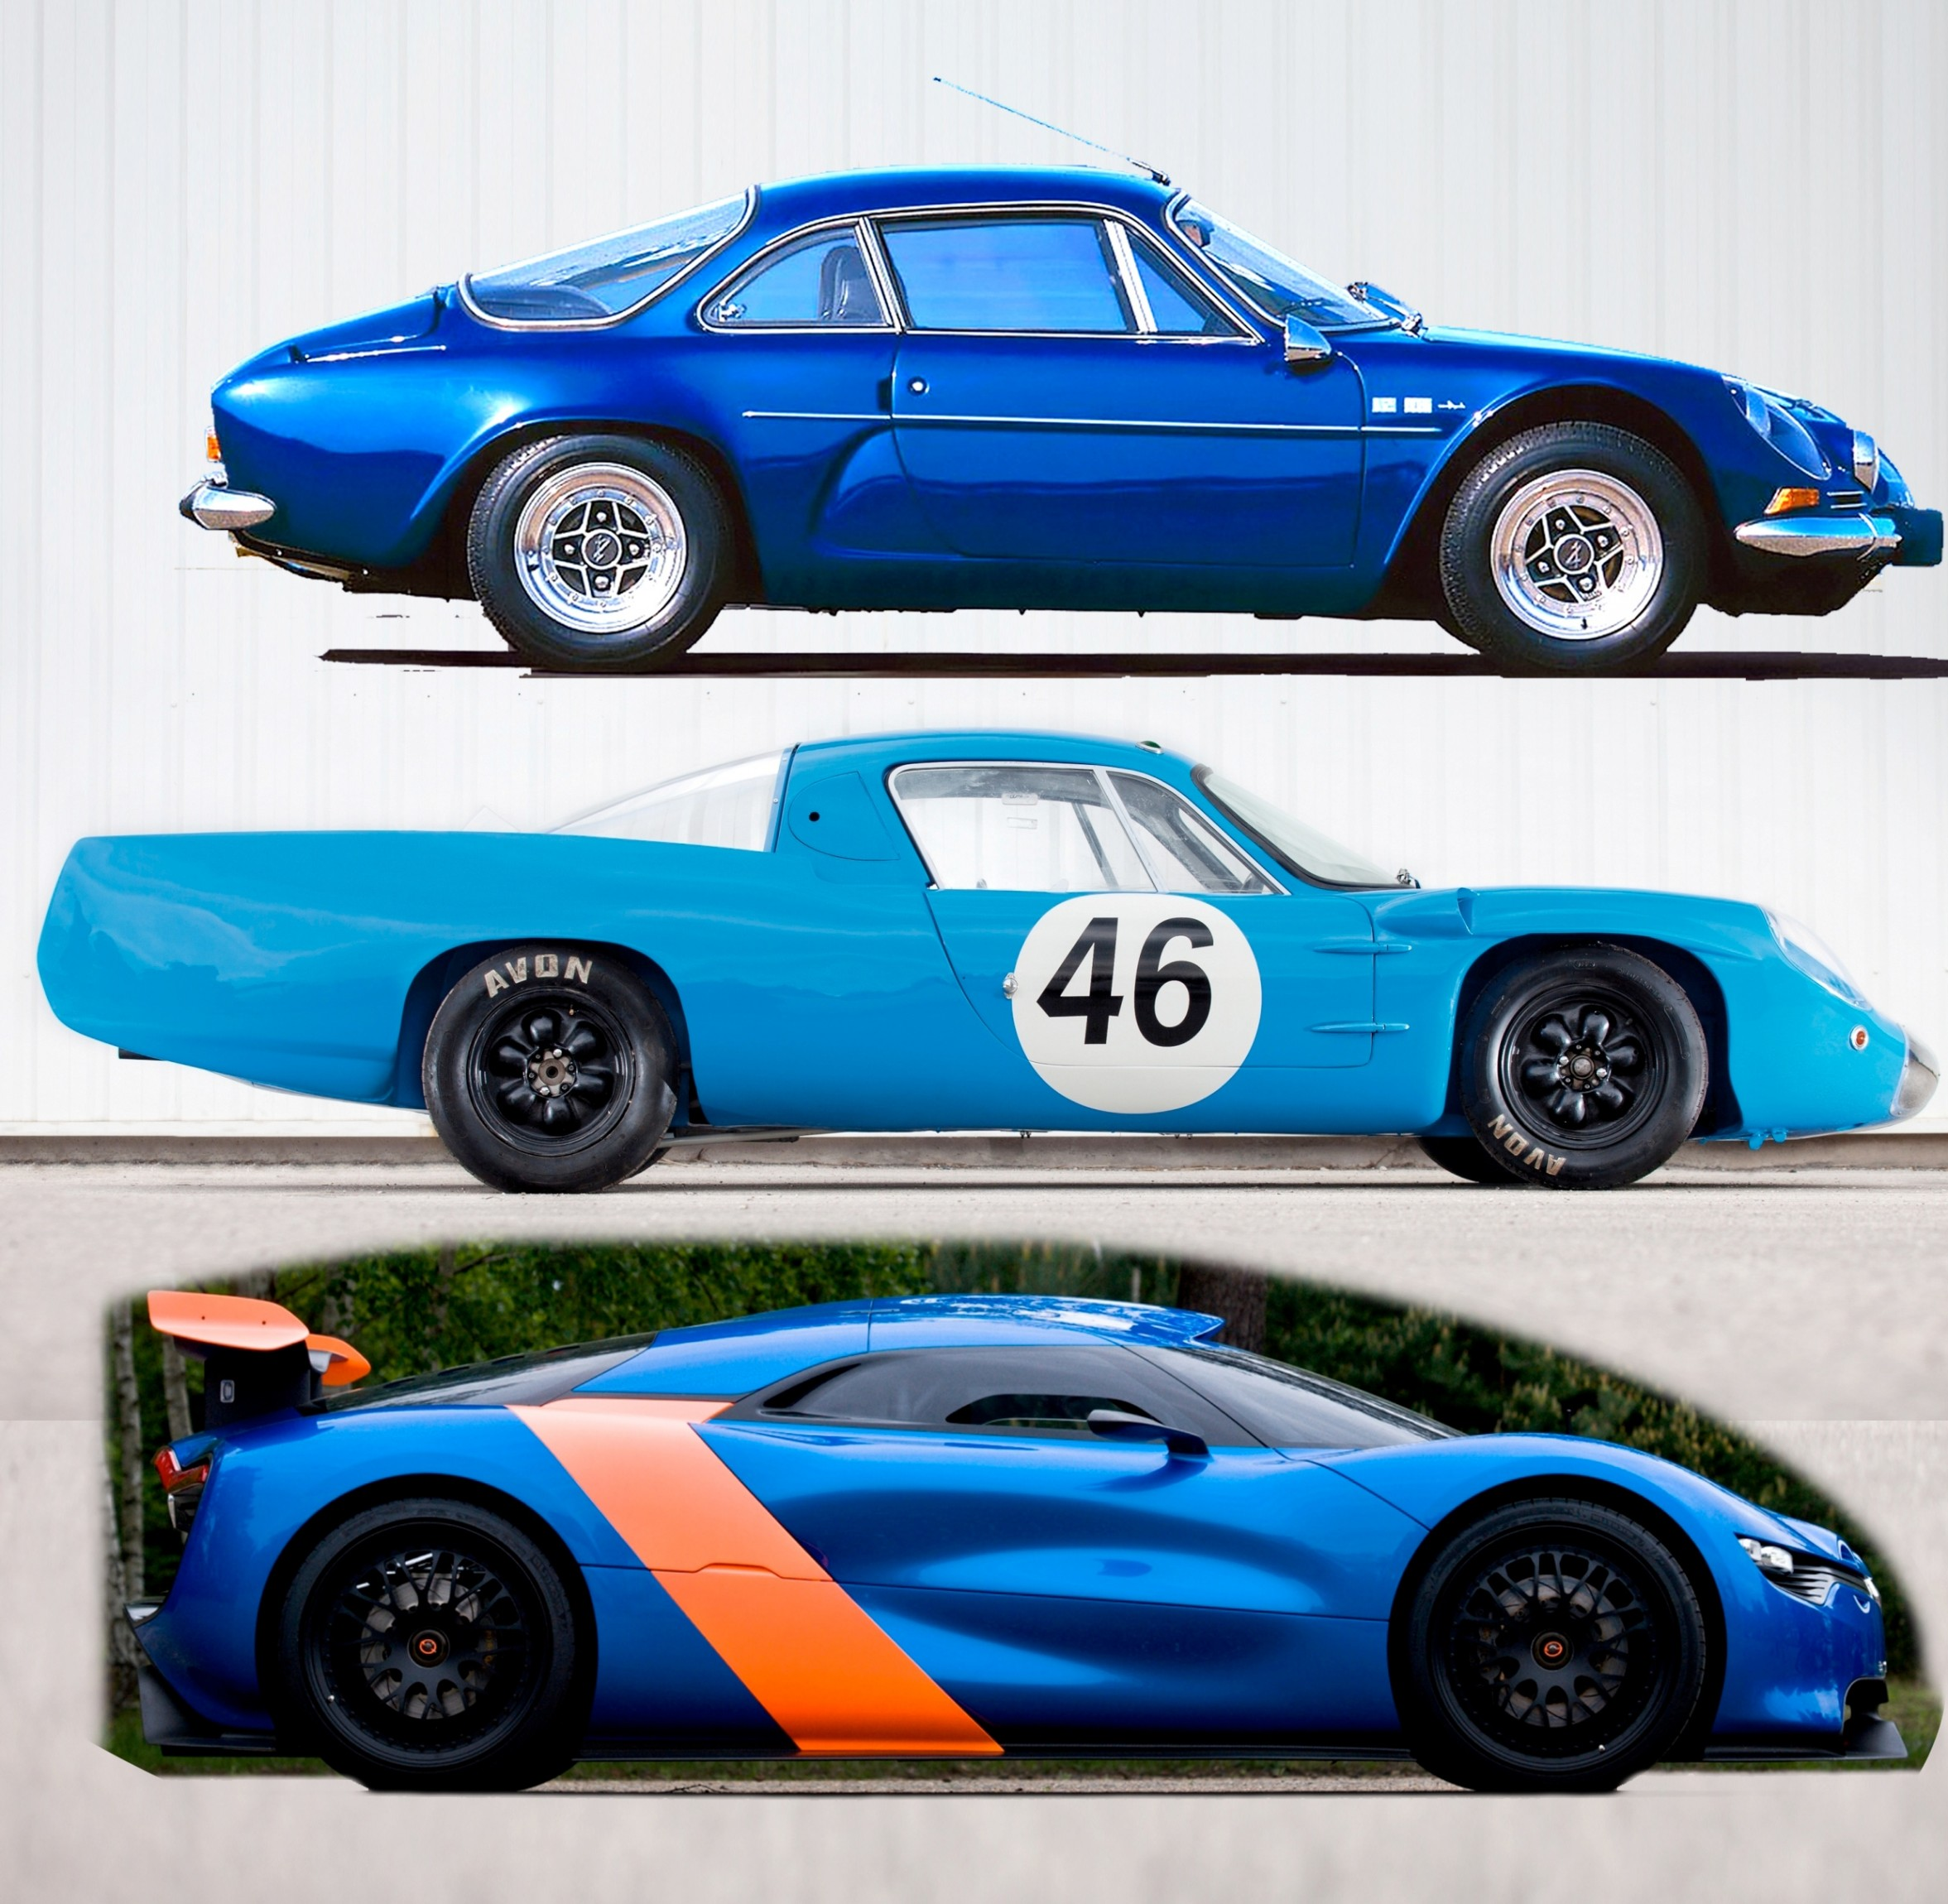 sportscar legacies then and now 2012 renault alpine a110 50 is a blend of 1964 m64 and a110. Black Bedroom Furniture Sets. Home Design Ideas